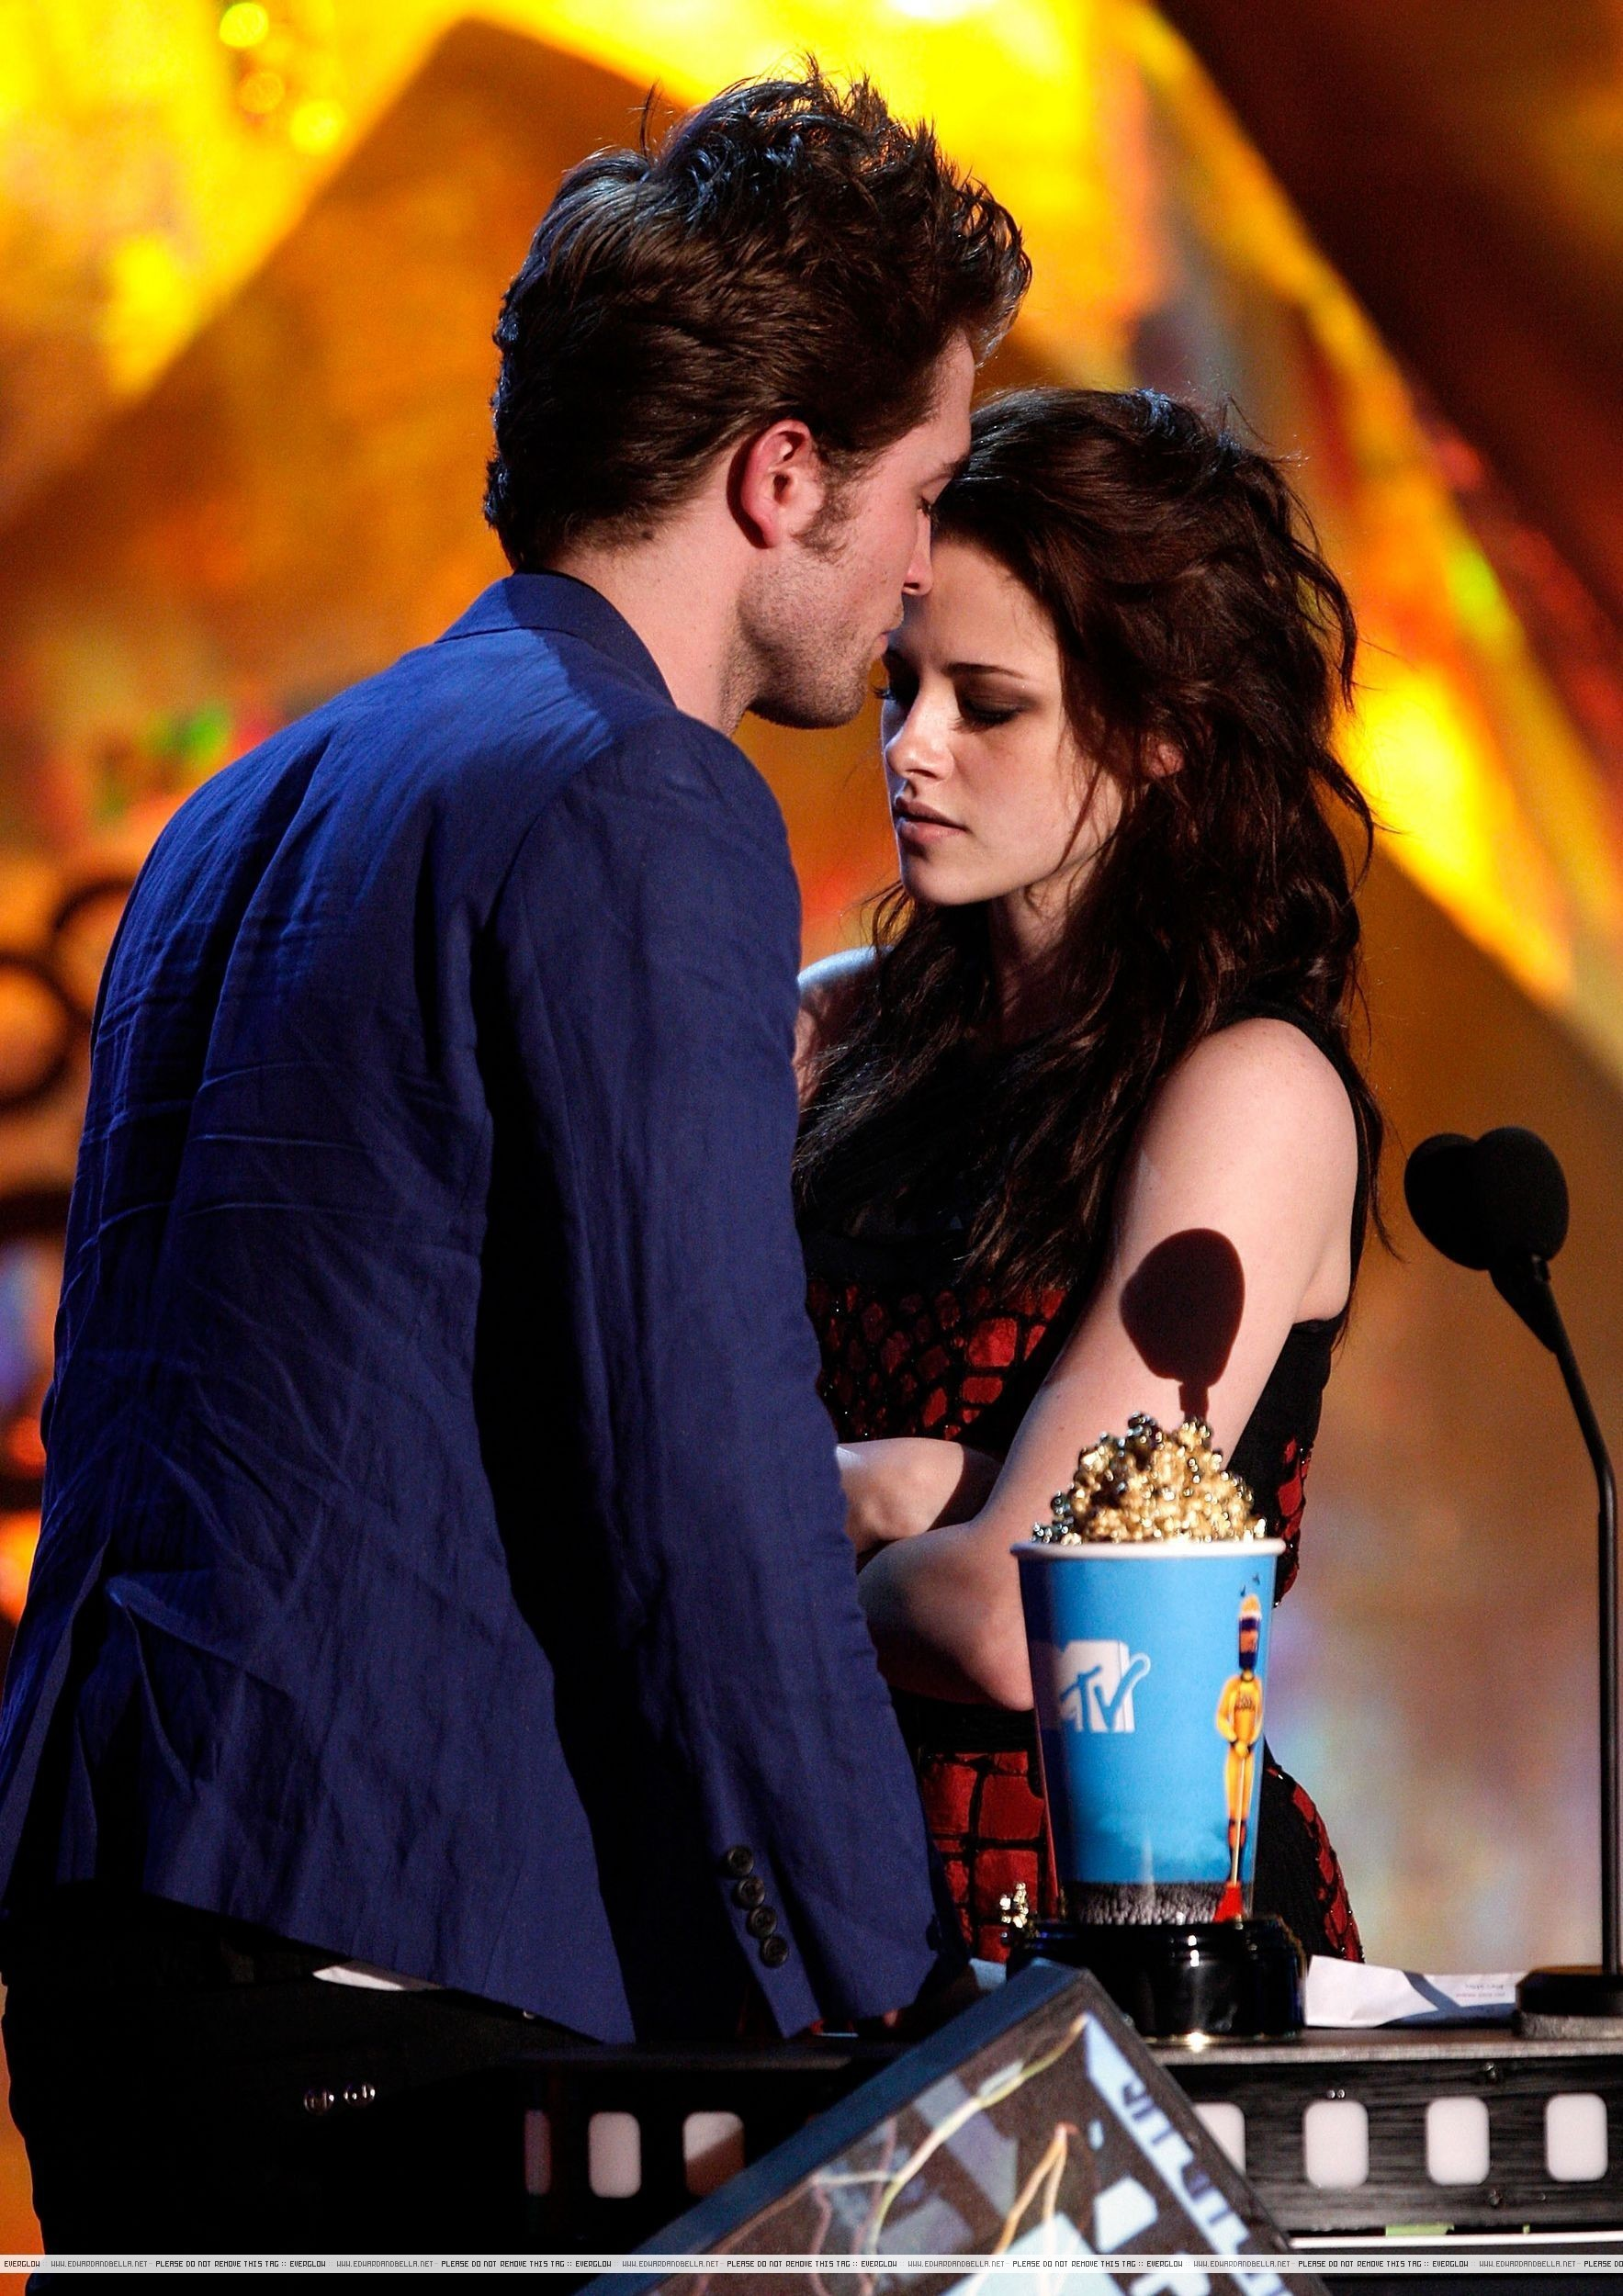 http://images2.fanpop.com/images/photos/6400000/mtv-movie-awards-twilight-series-6494262-1767-2500.jpg